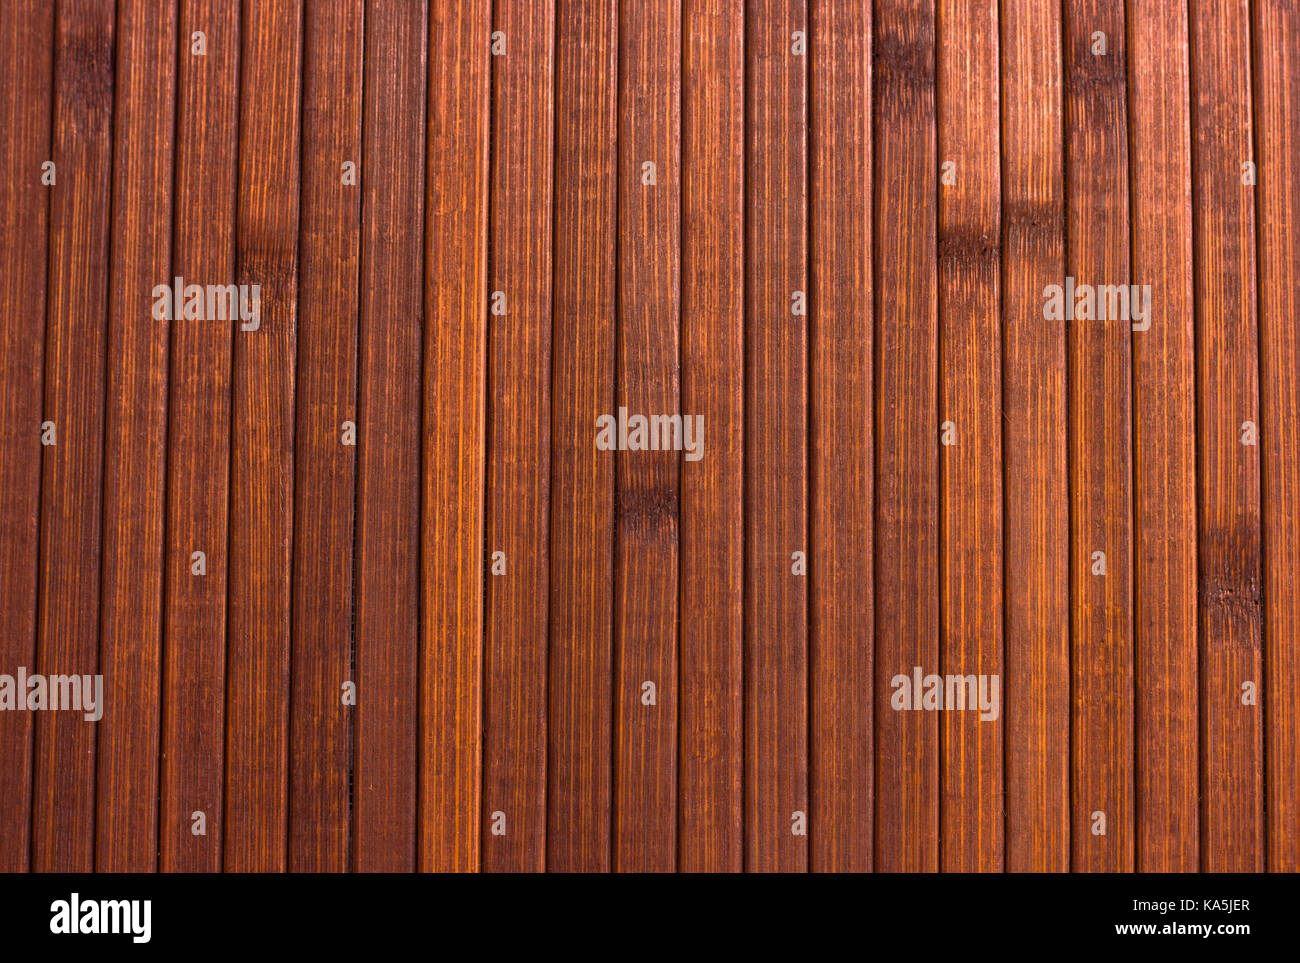 Wooden brown background. Smooth polished wood - Stock Image